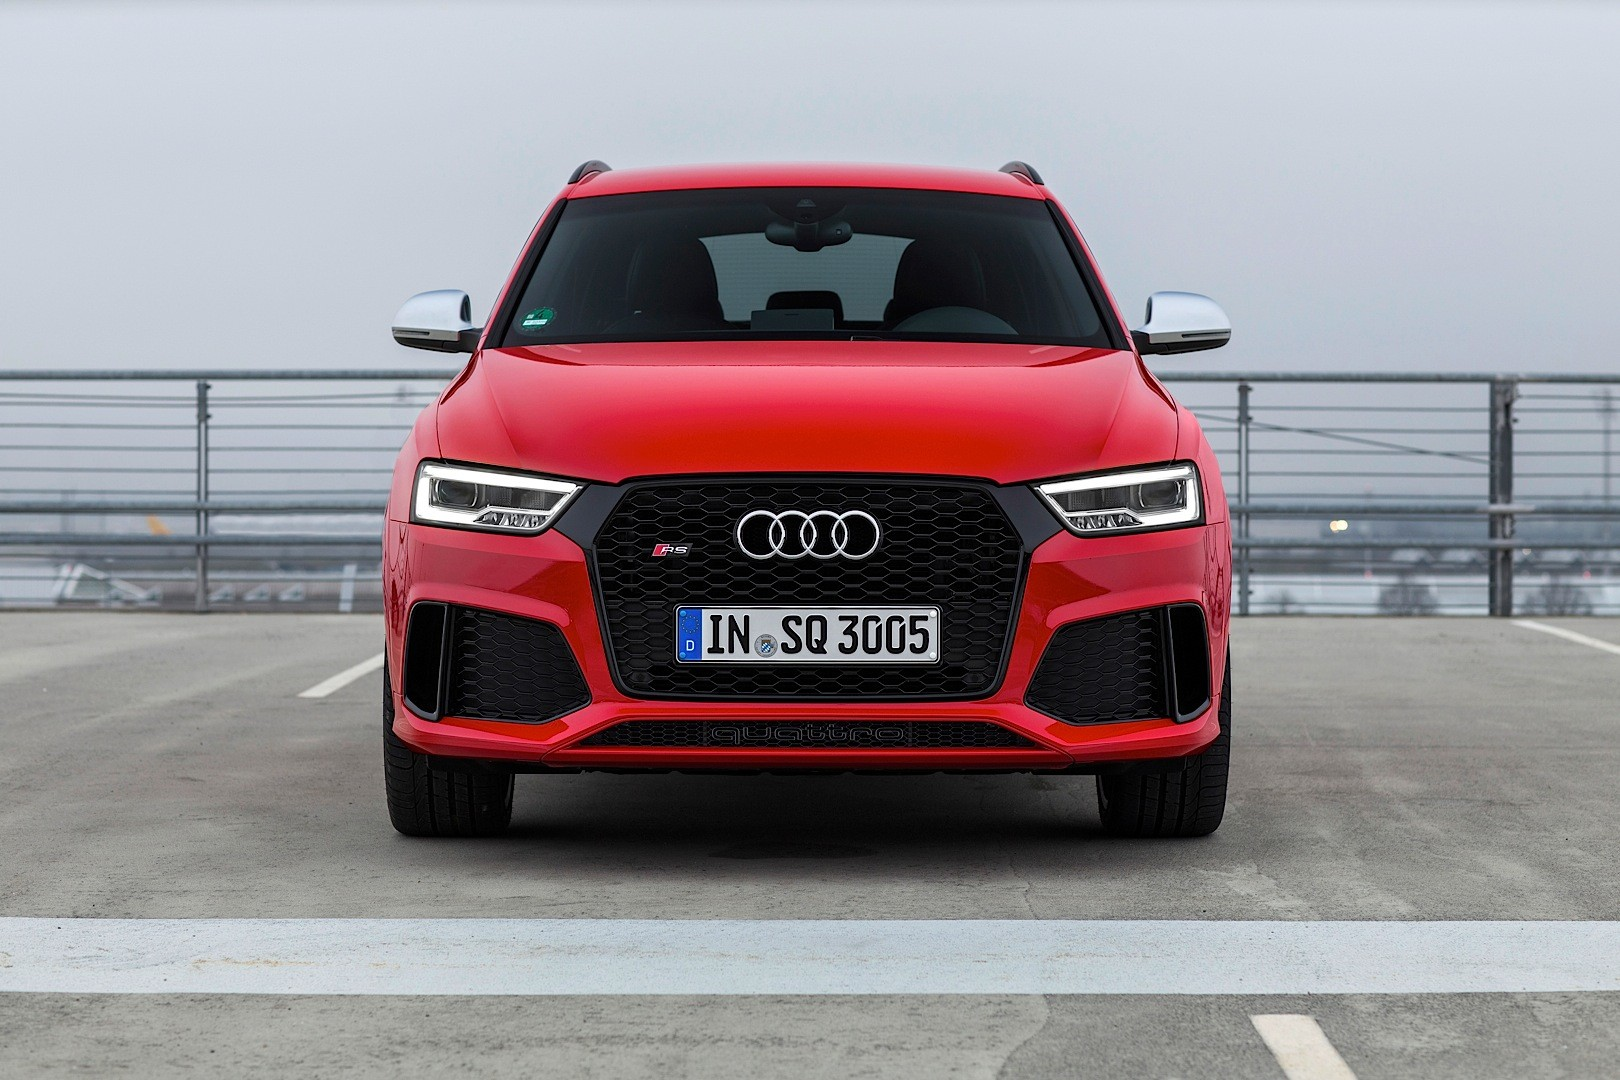 Audi Shares New 2015 Q3 and RS Q3 Photos: Fresh Colors, New Trim Pieces - autoevolution